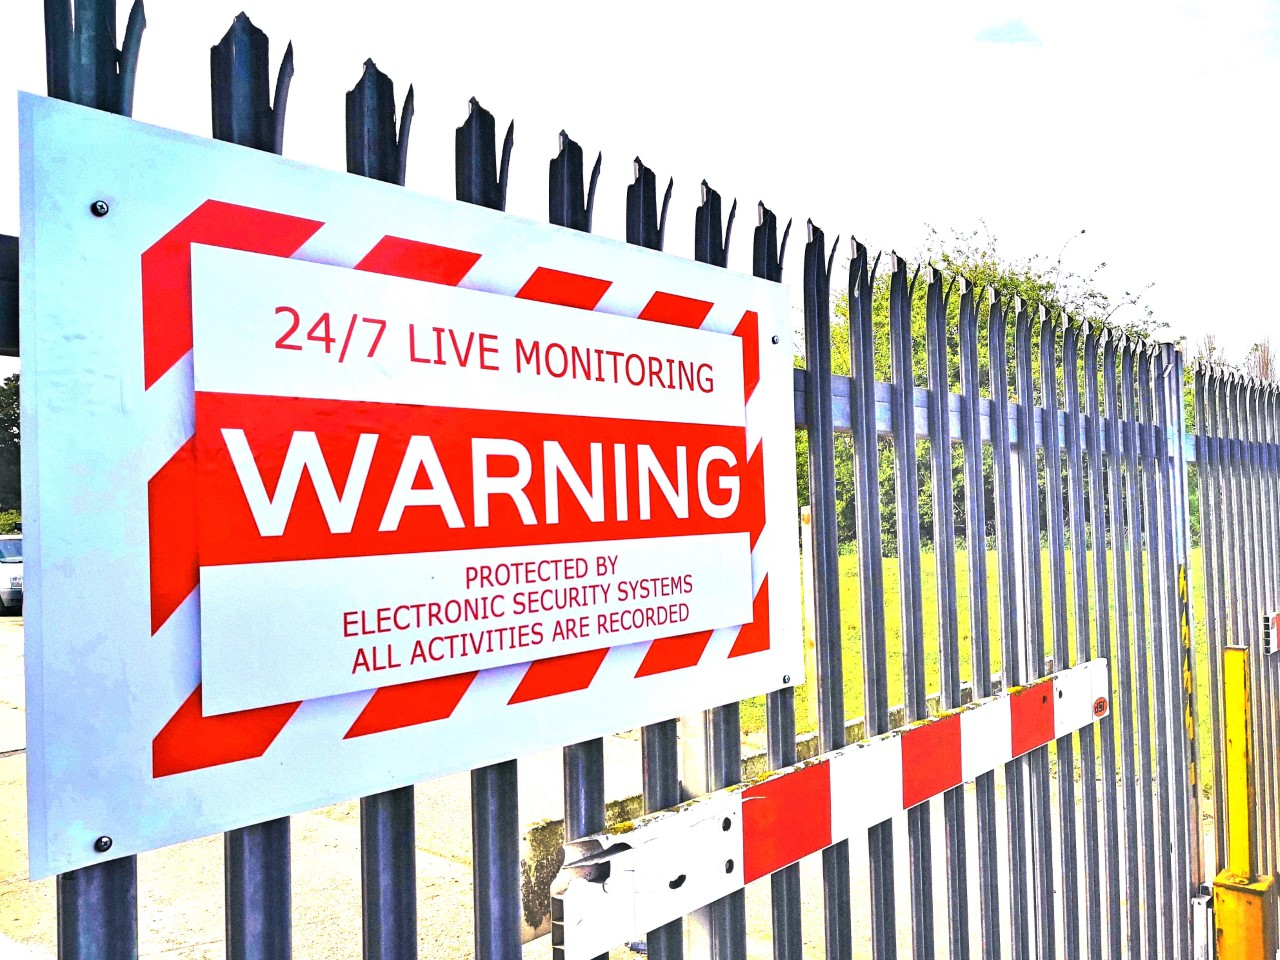 alarm systems_littlehampton_wire wizards